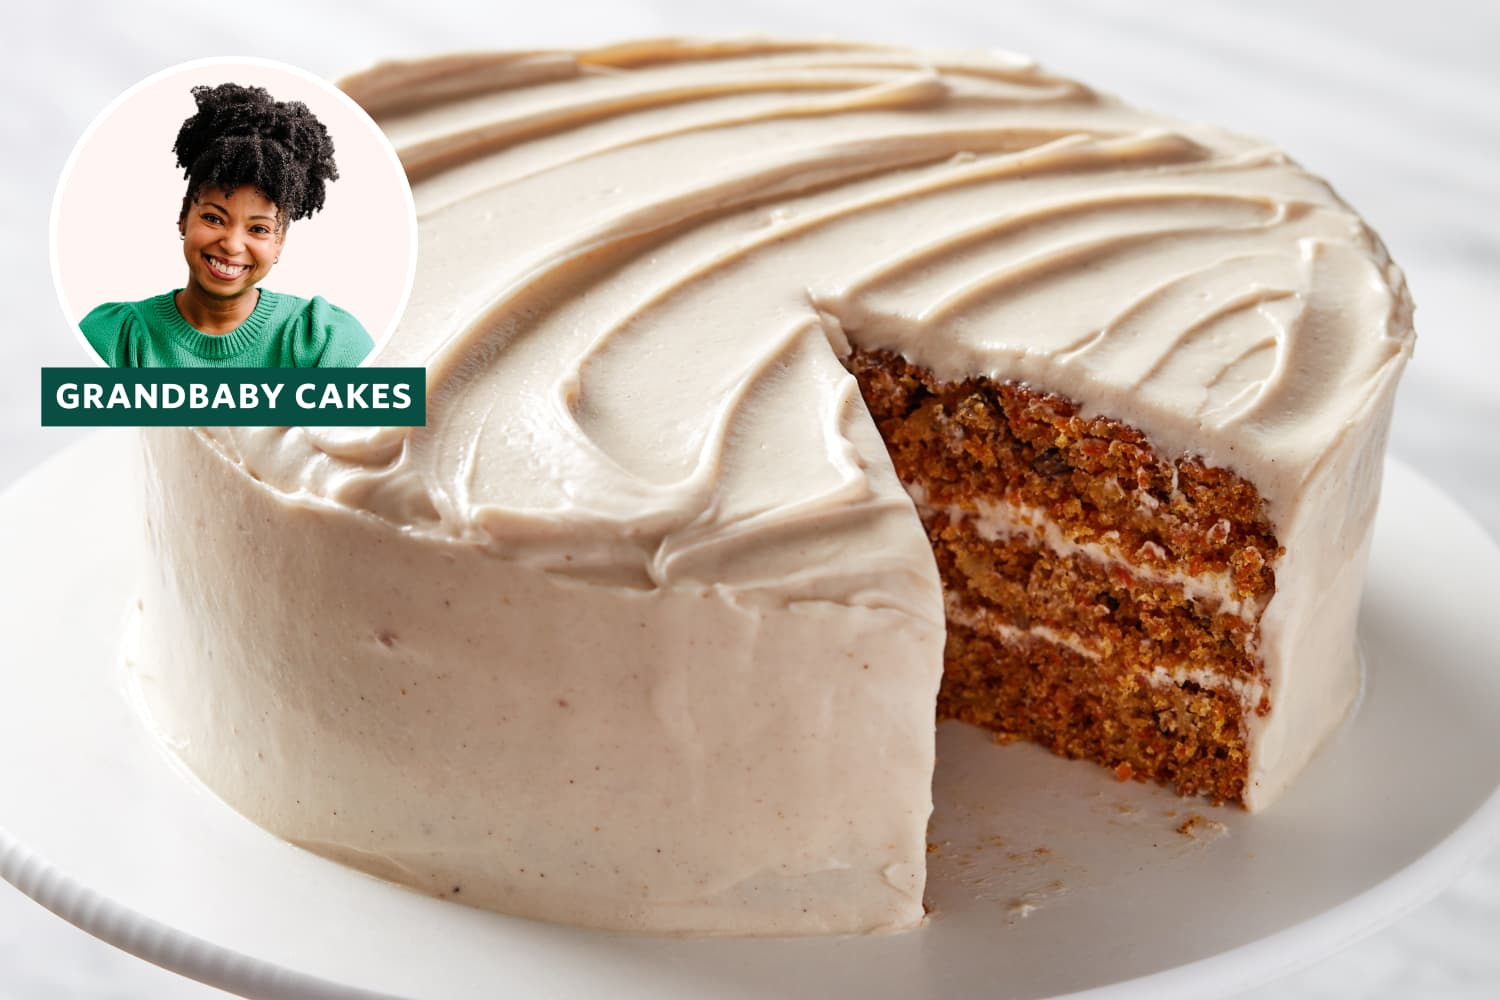 The Unexpected Technique That Makes This Carrot Cake So Good